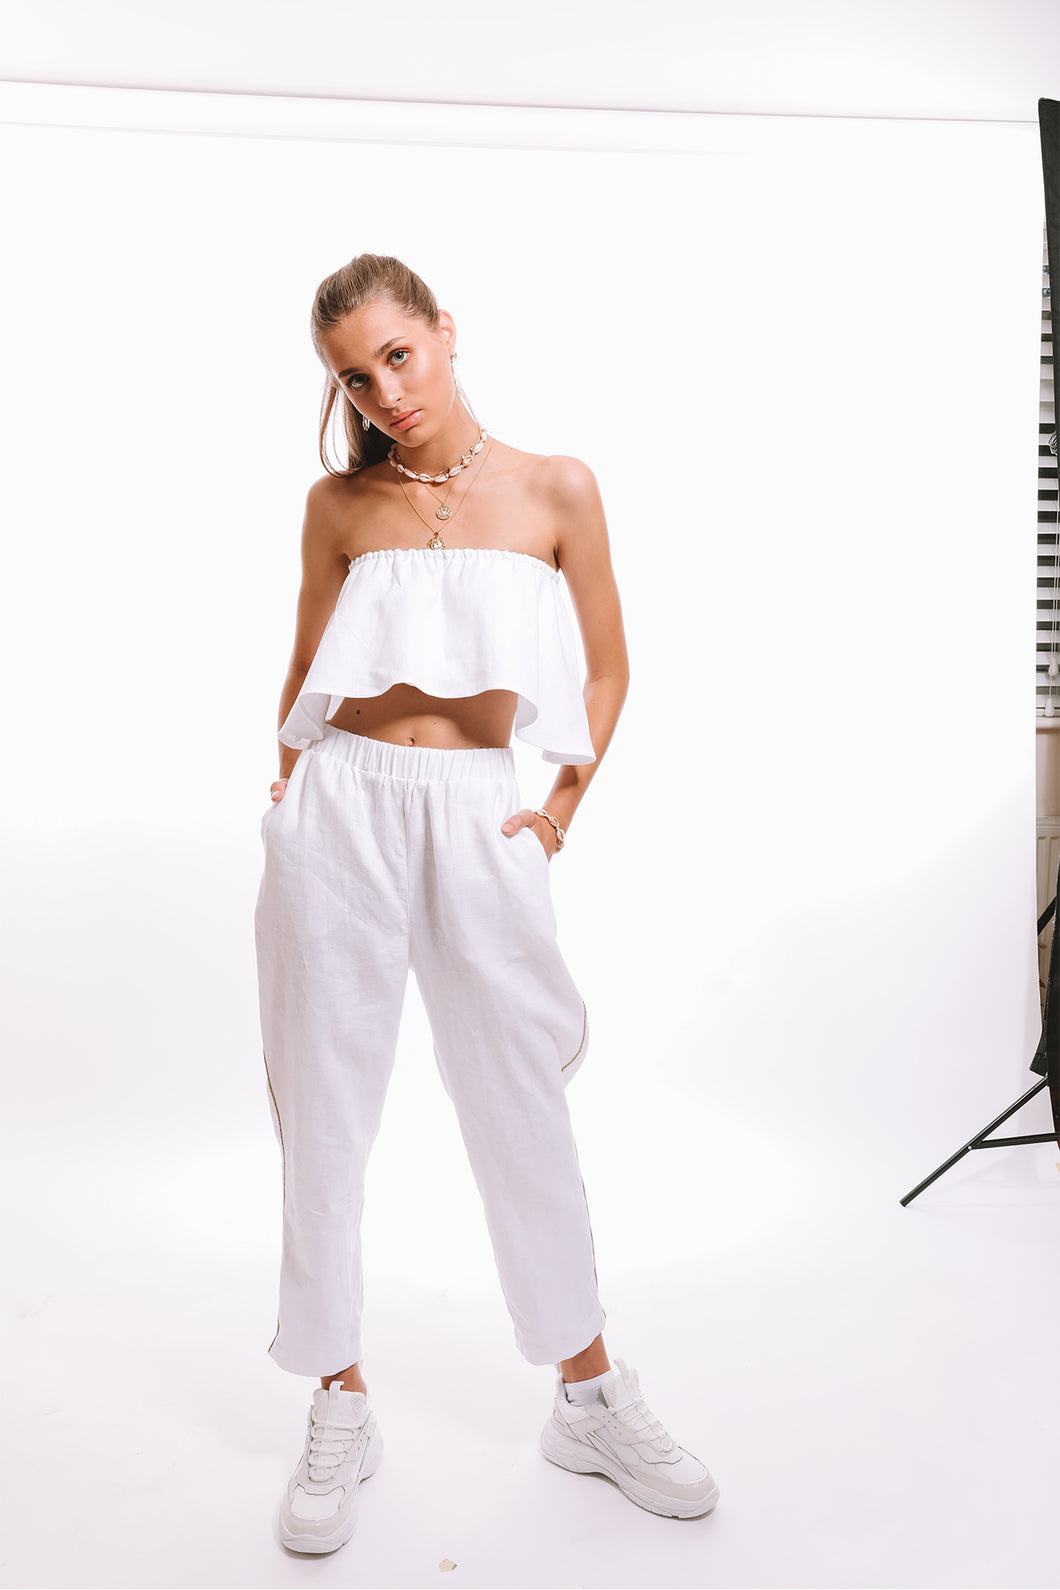 Presea Linen Relaxed Trousers with Gold Detail in White - Preséa